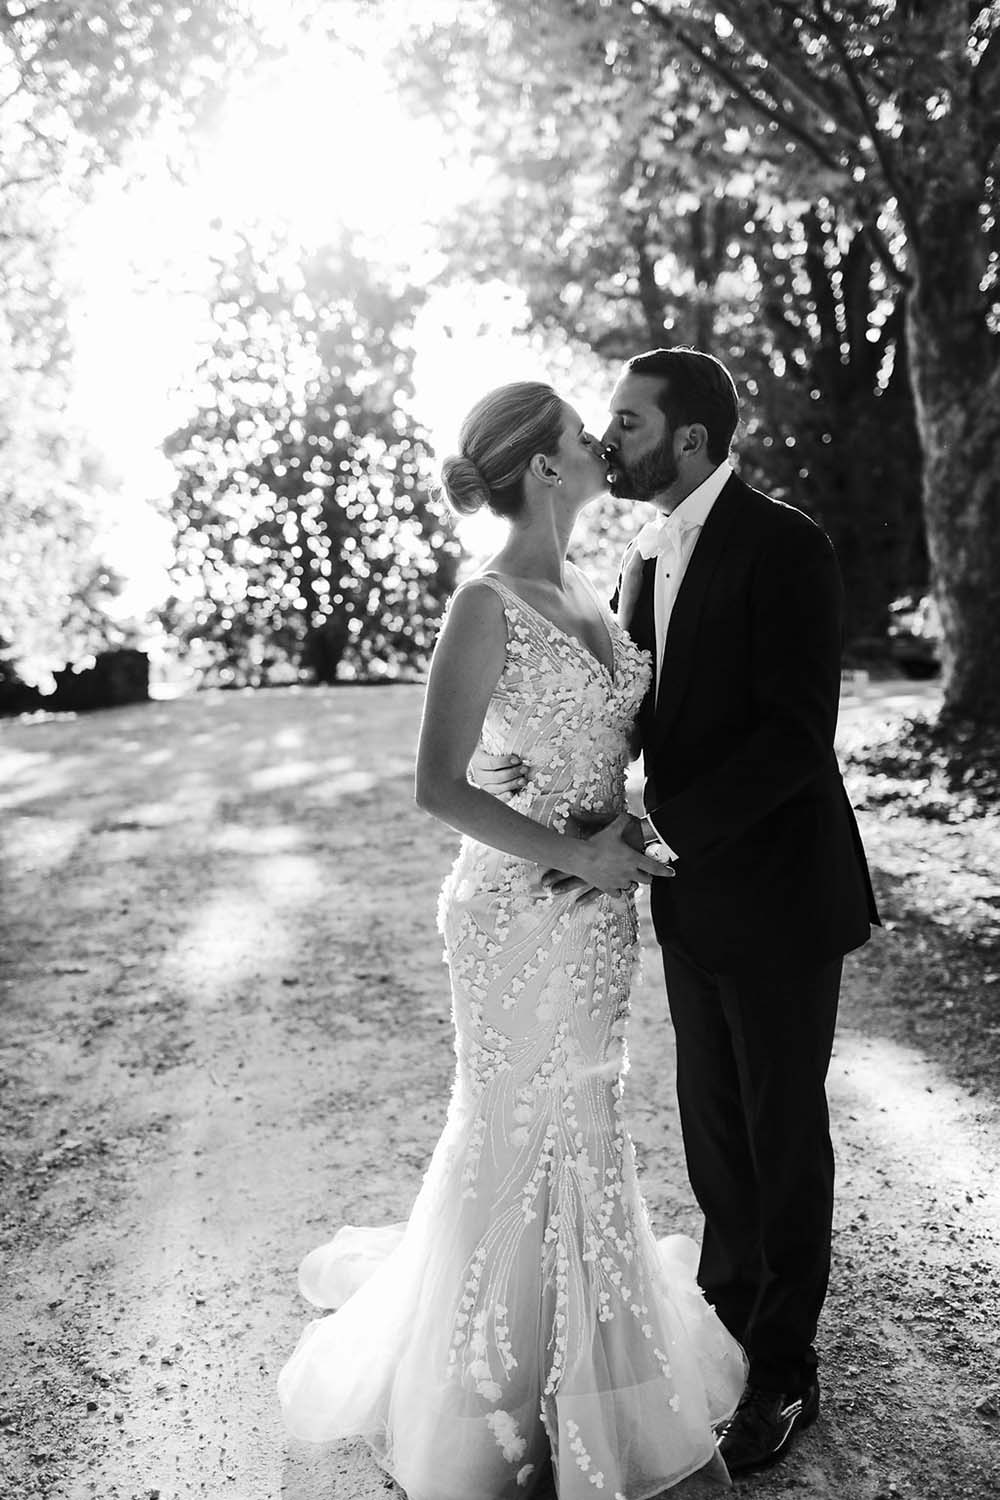 Emma + Tom - Deux Belettes Byron Bay Wedding Venue | The Events Lounge - Byron Bay Wedding Planning and Styling - www.theeventslounge.com.au